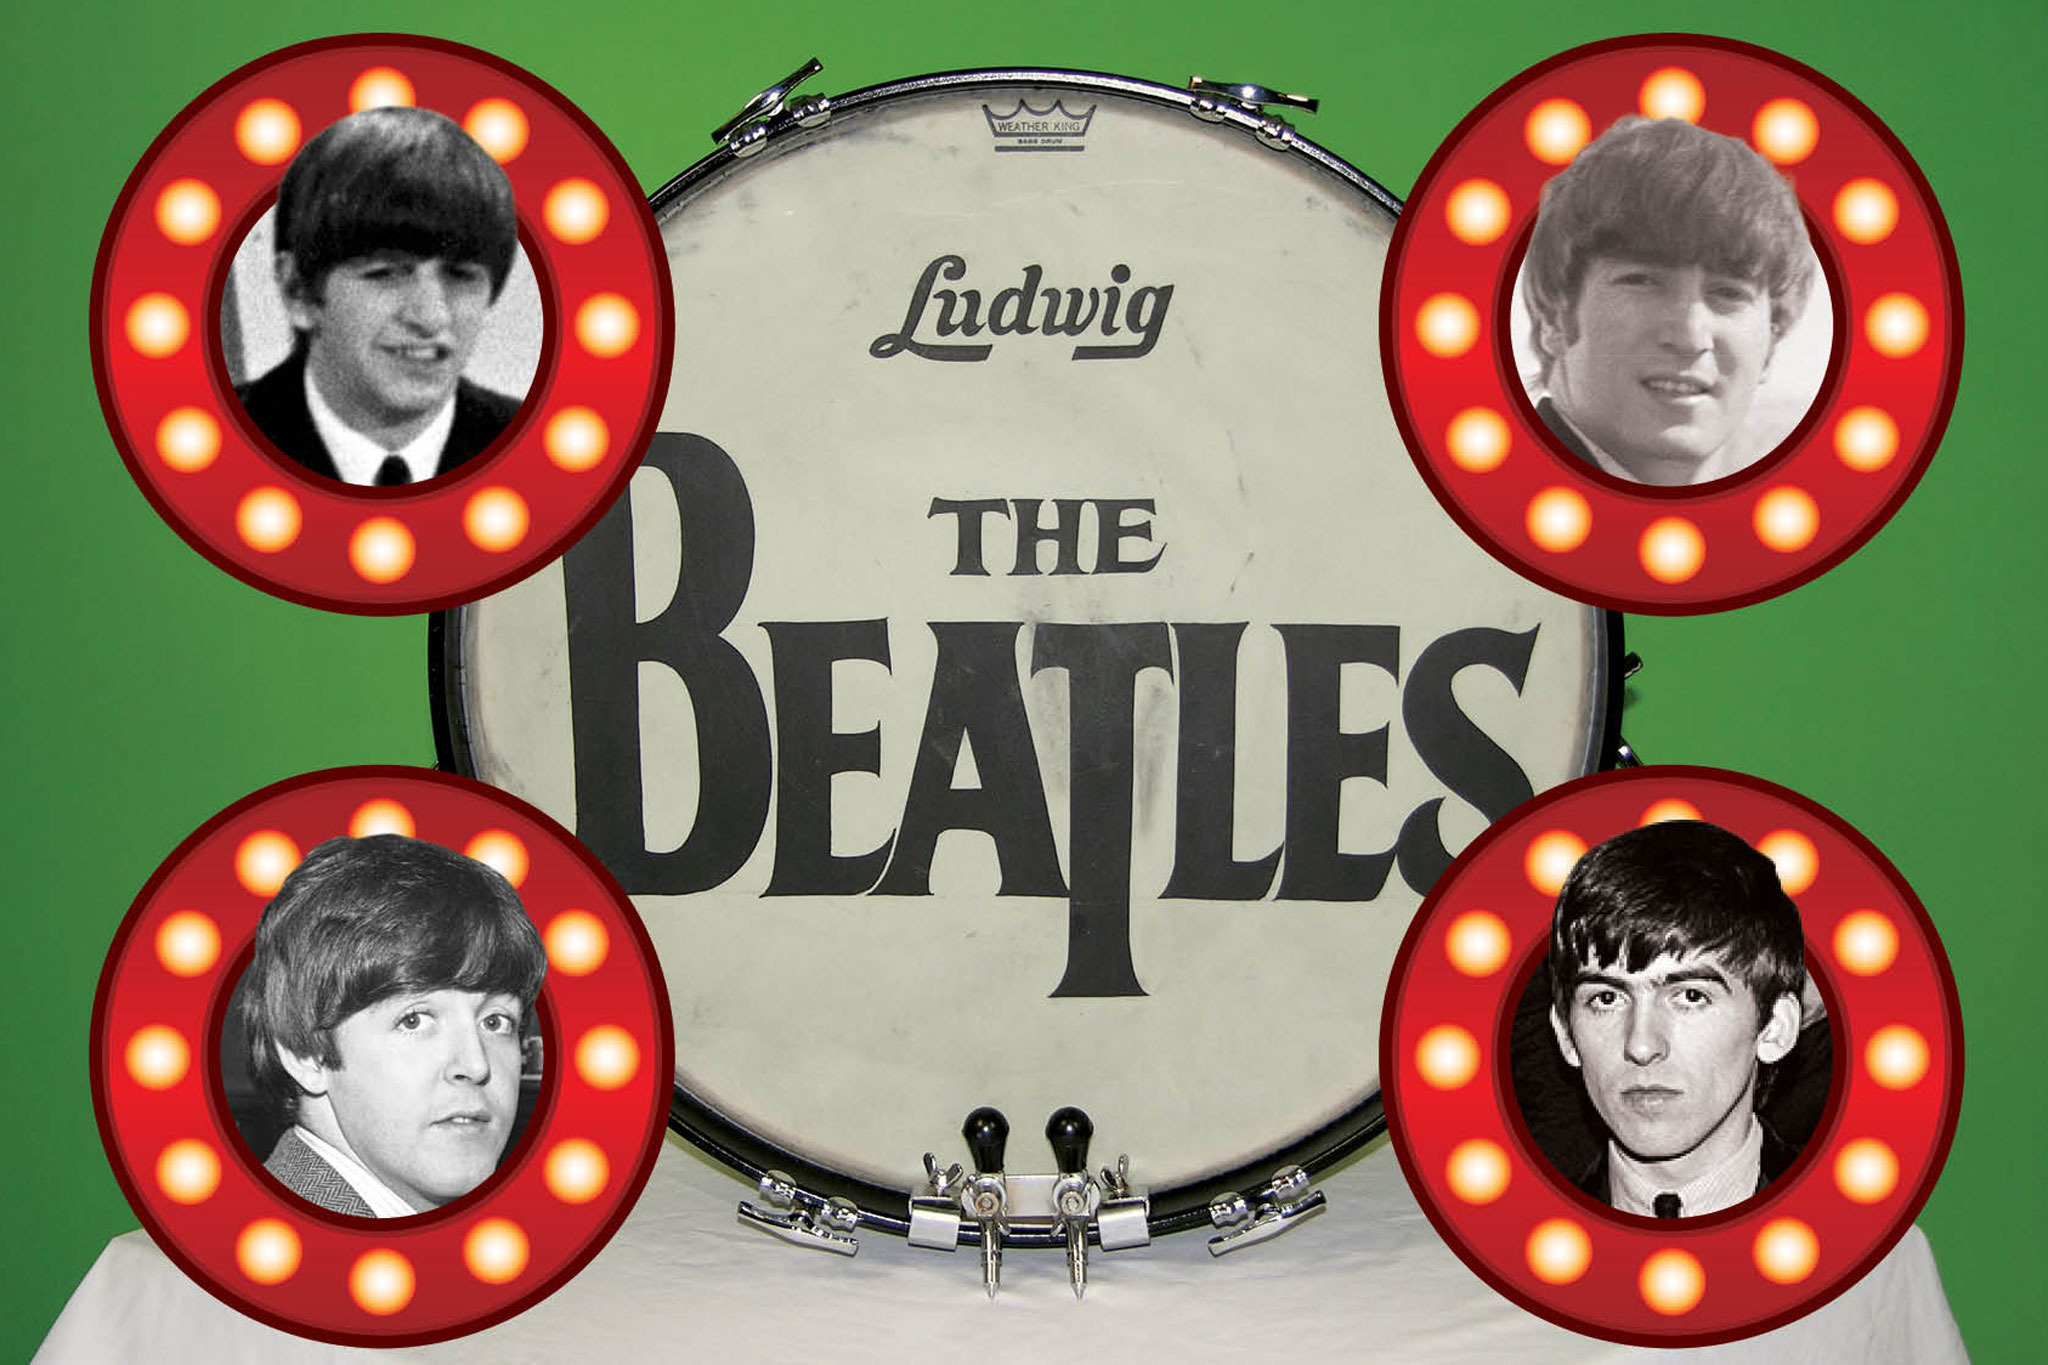 Call yourself a Beatlemaniac? Prove it!